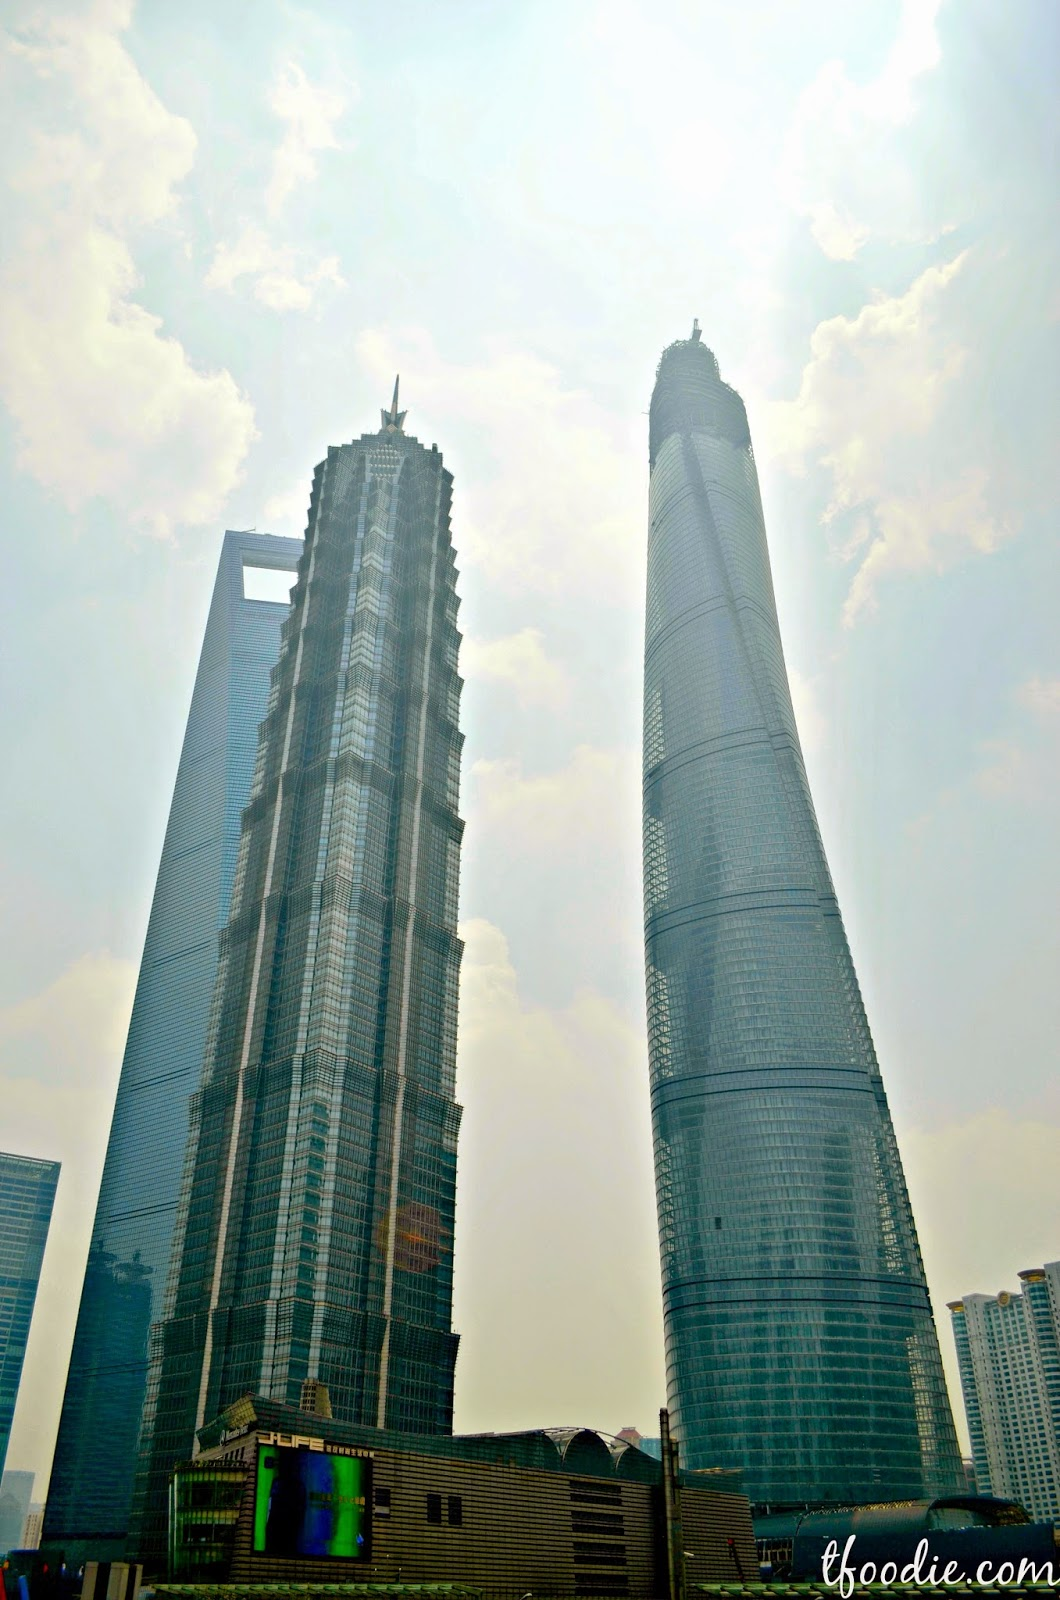 The traveling foodie: Pudong & SWFC, Shanghai